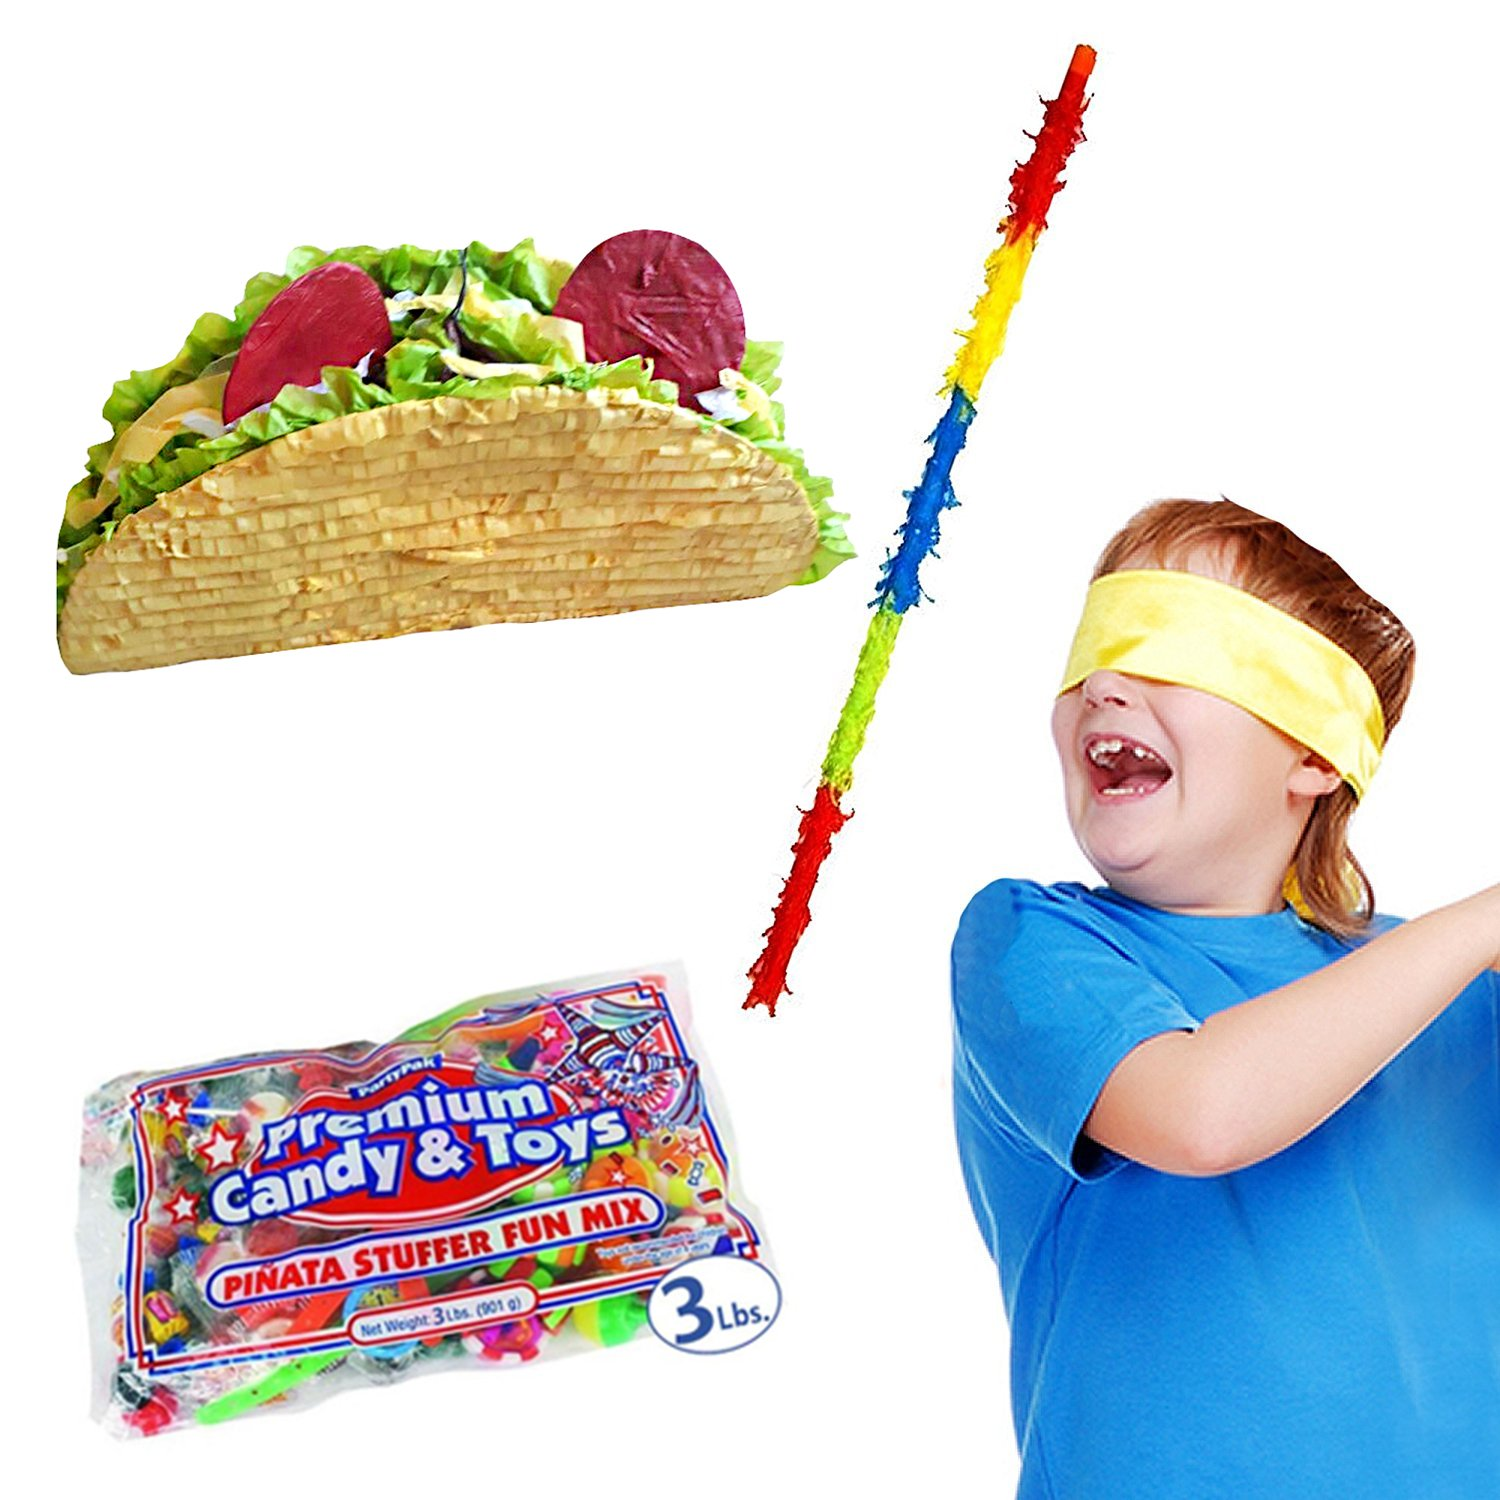 Large Mexican Taco Pinata Kit for Fiestas Including Pinata, 3 lb Candy Filler, Buster Stick and Bandana, 26'' L